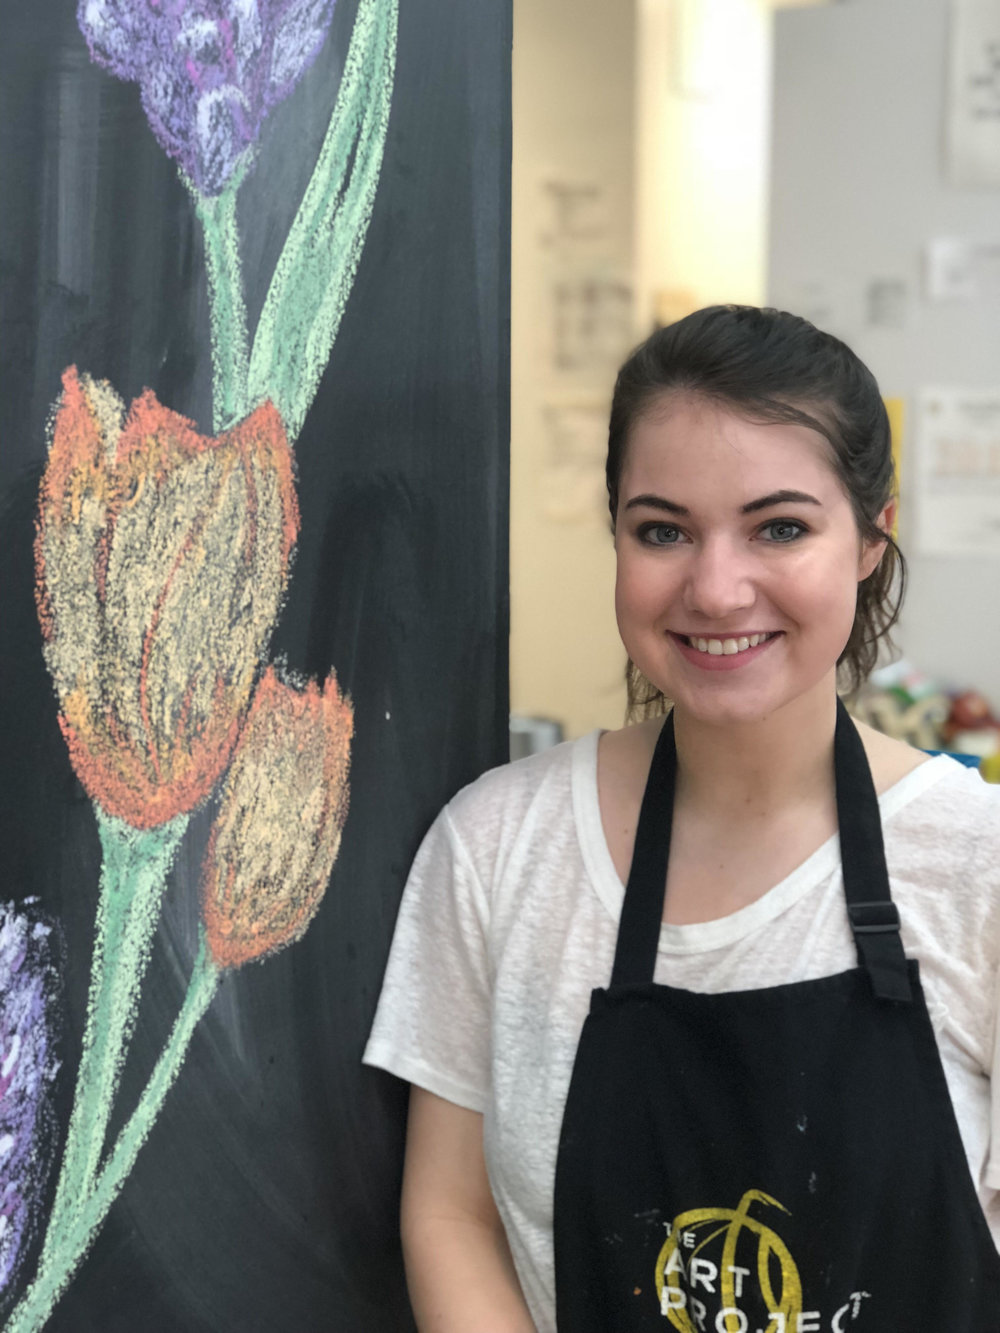 Clara McDonald   This is Clara McDonald! She is 20 years old and just moved back to Memphis to attend college as a sophomore. Clara is majoring in Literary Publishing and New Media, but she enjoys art as a constant presence in her life. She says collage art therapy is her favorite way to relax, but that painting is a close second.